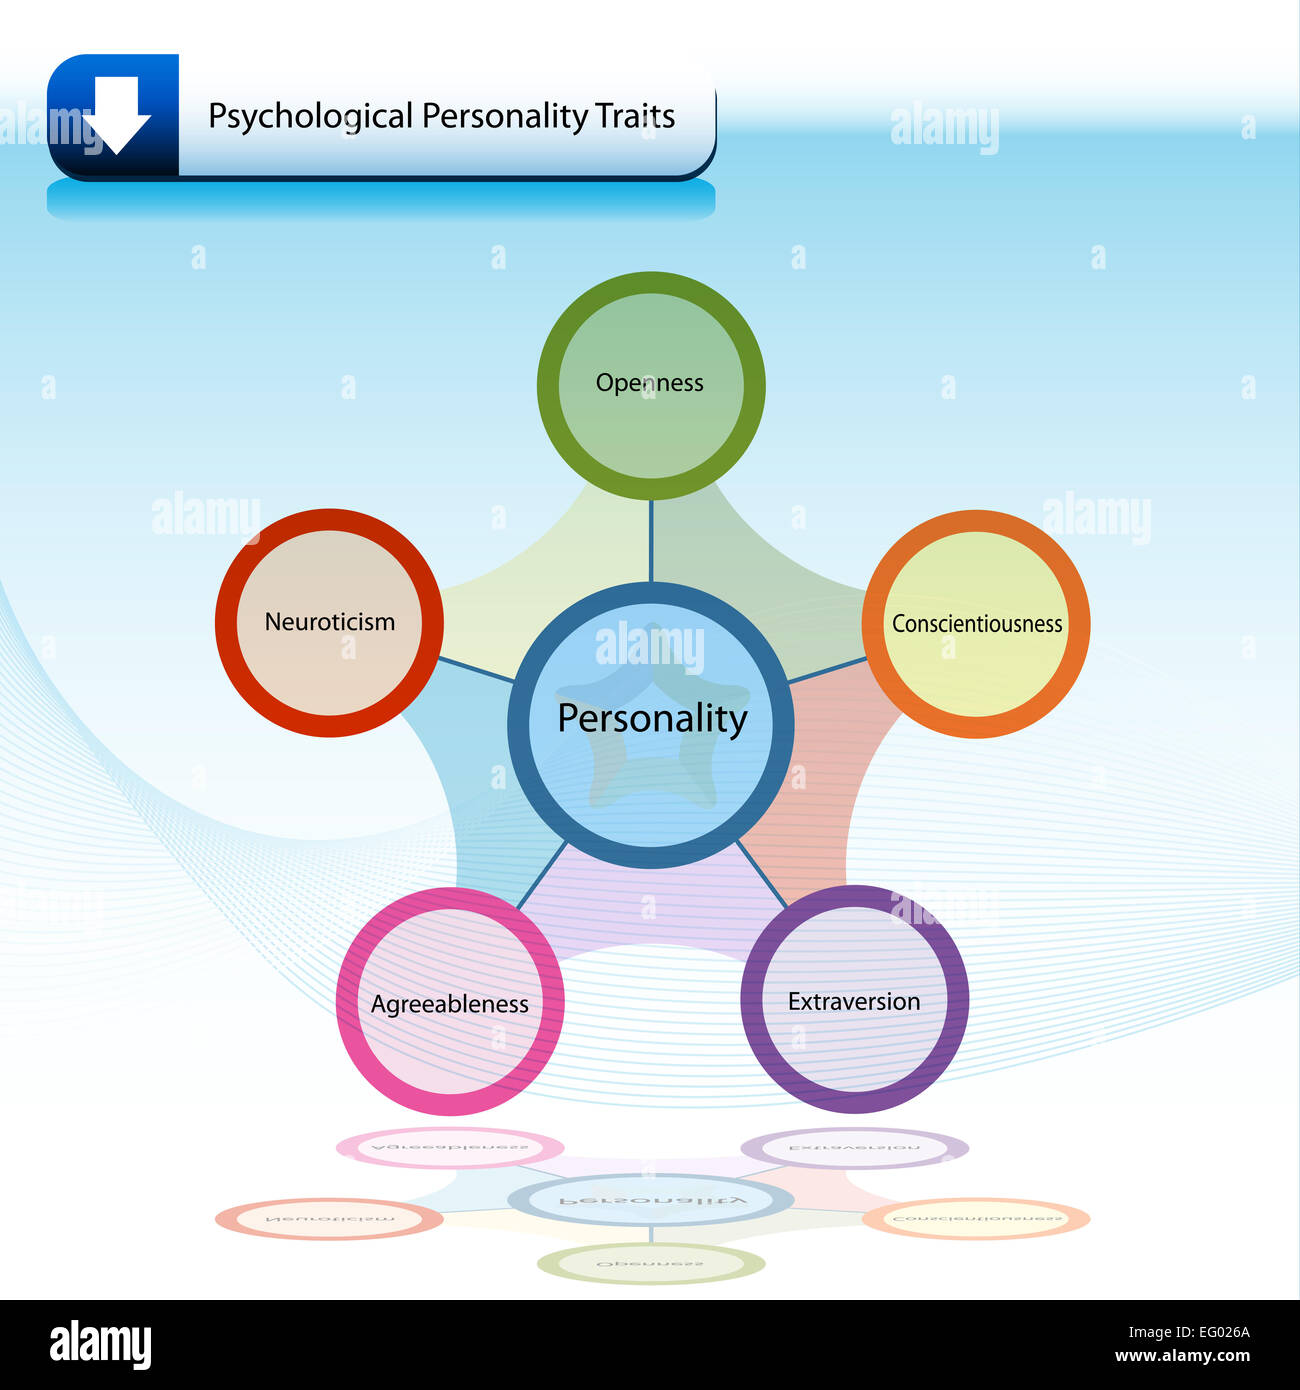 hight resolution of an image of a psychological personality traits chart diagram